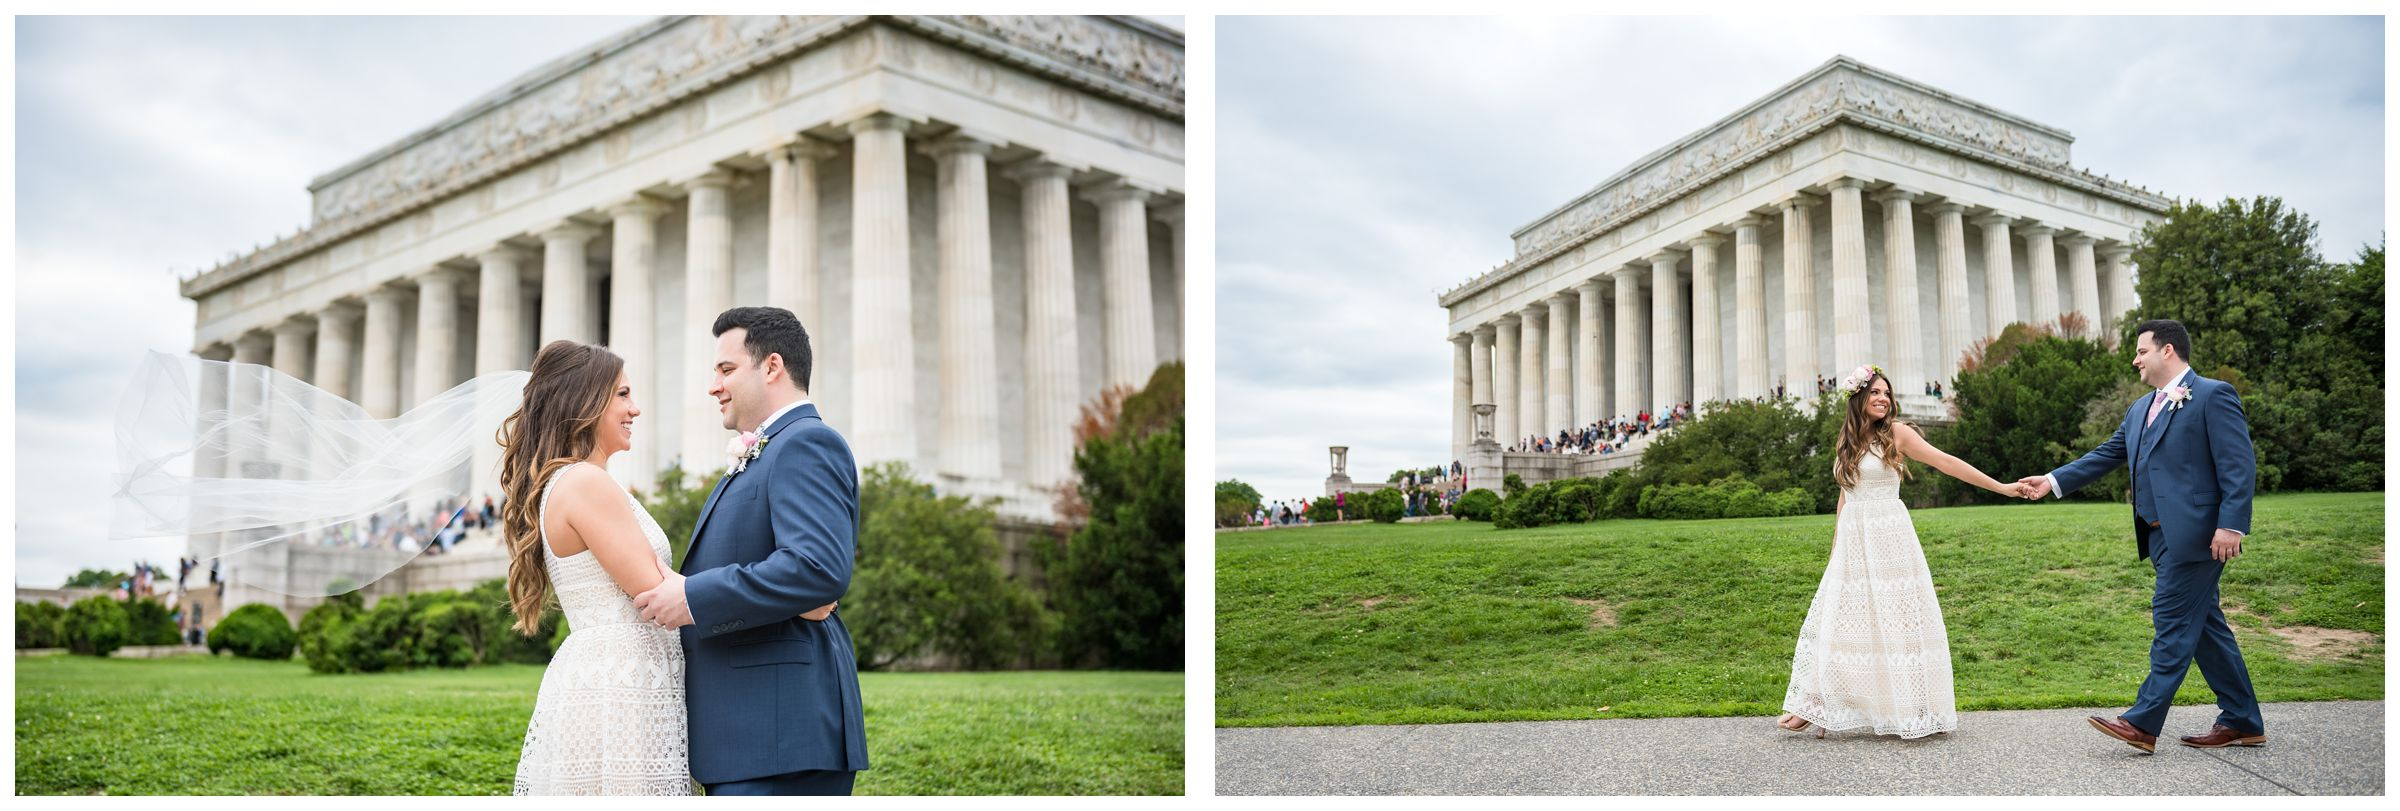 bride and groom in front of Lincoln Memorial during DC monument wedding day in Washington